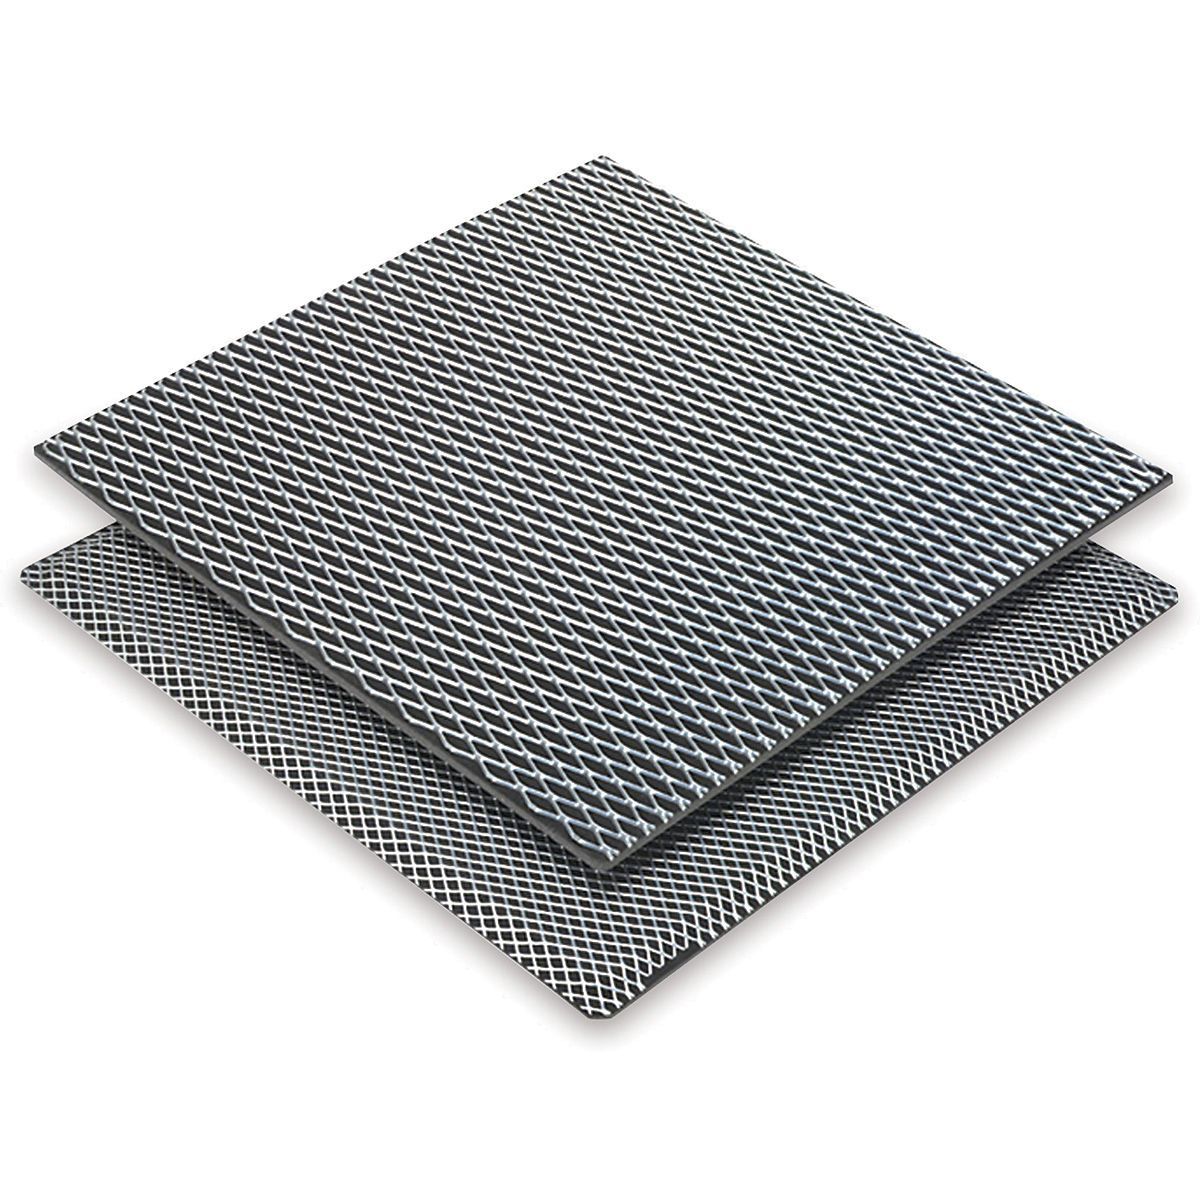 Sonex squareline acoustic ceiling tiles let you create a ceiling we have a large variety of acoustical ceiling tiles for sound control and noise reduction ceiling tiles for dropping into your standard ceiling grid and dailygadgetfo Choice Image